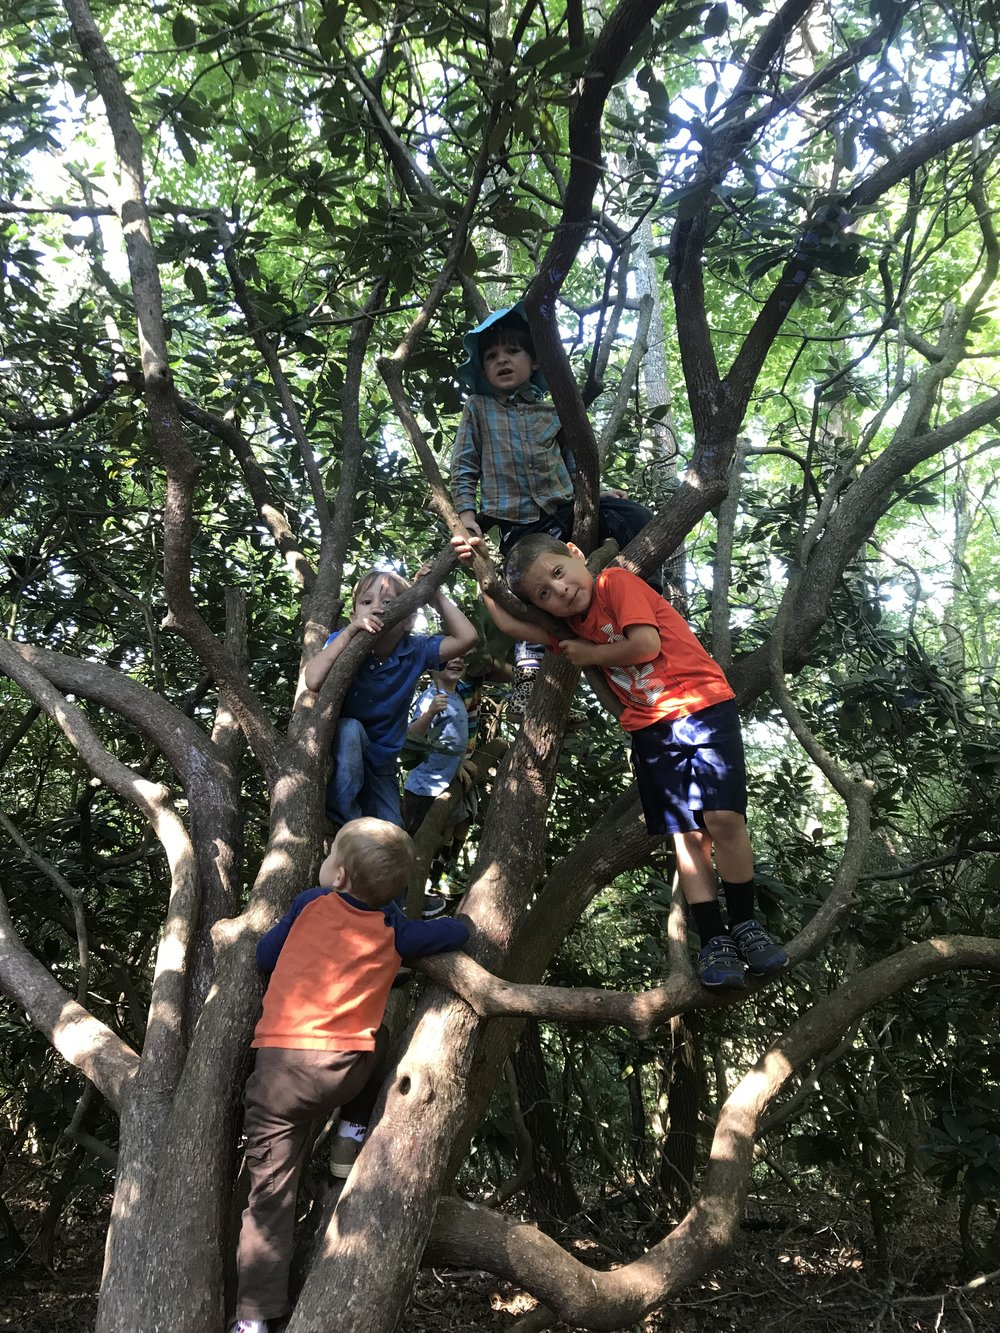 Children at the Climbing Tree.